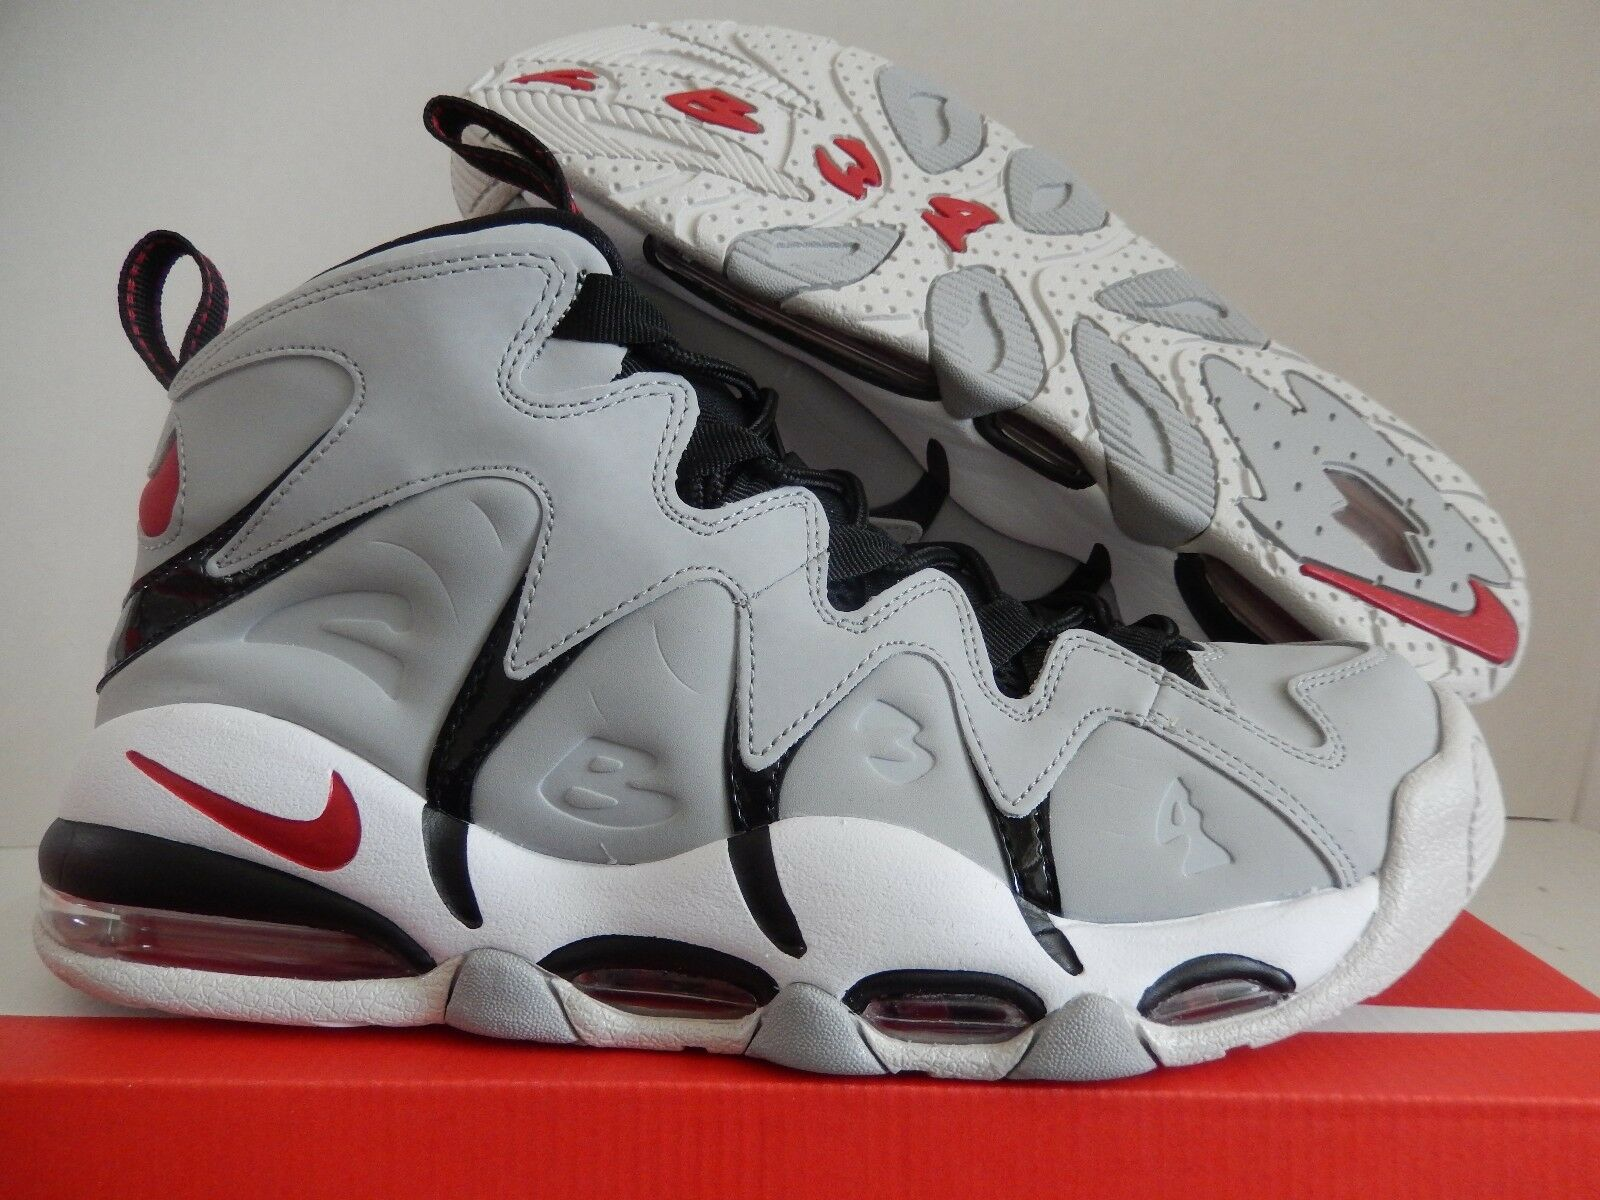 nike air max cb34 wolf grey varsity red 6s